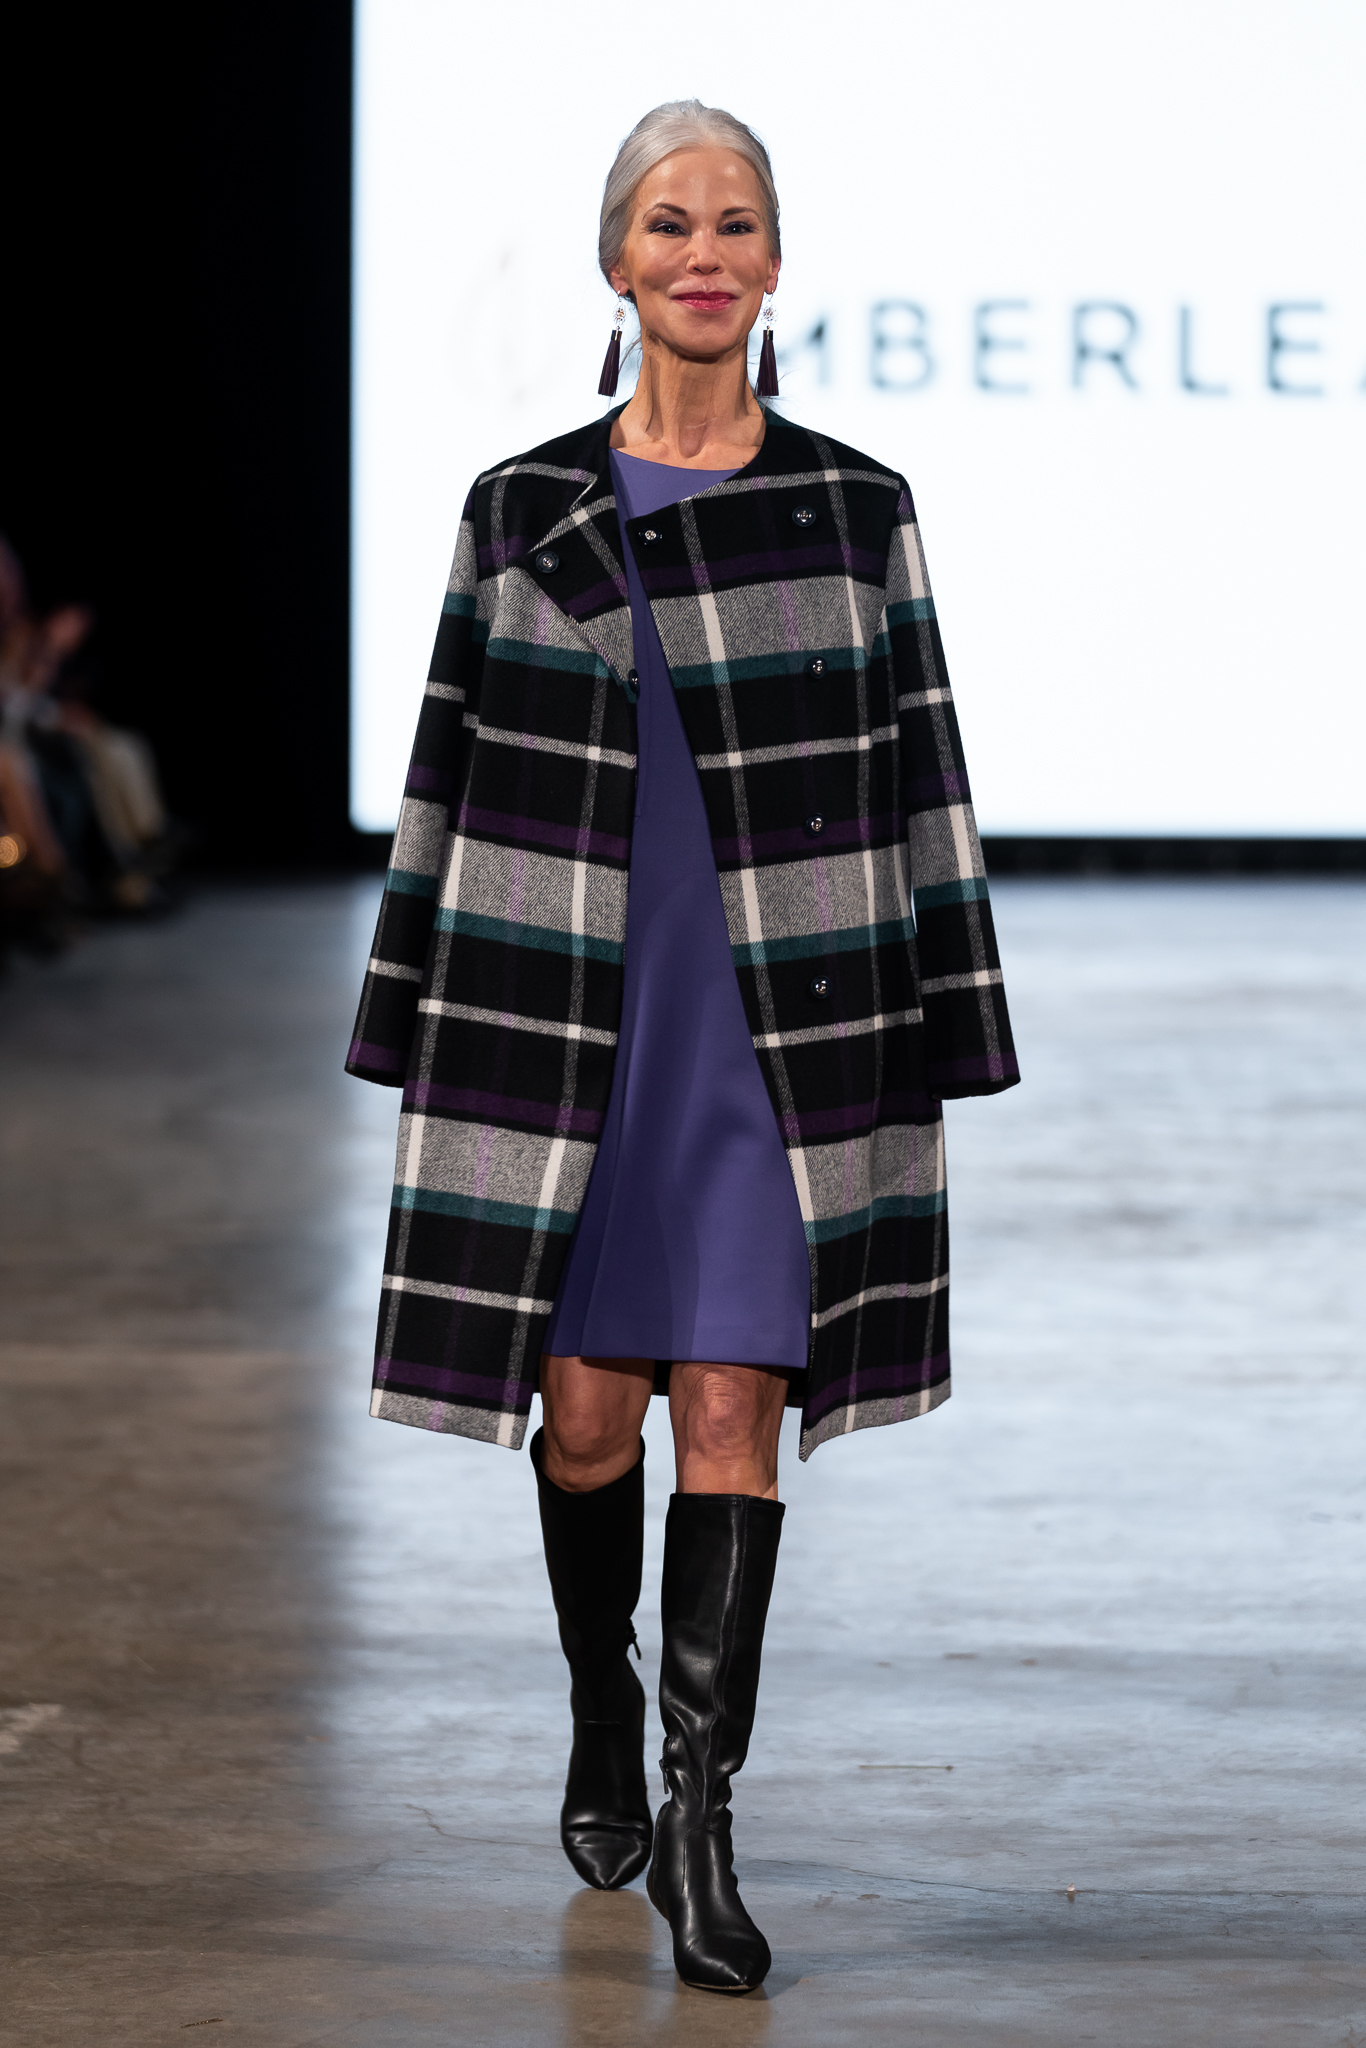 amberleaf | texas-based fashion designer | fashion x austin fashion week